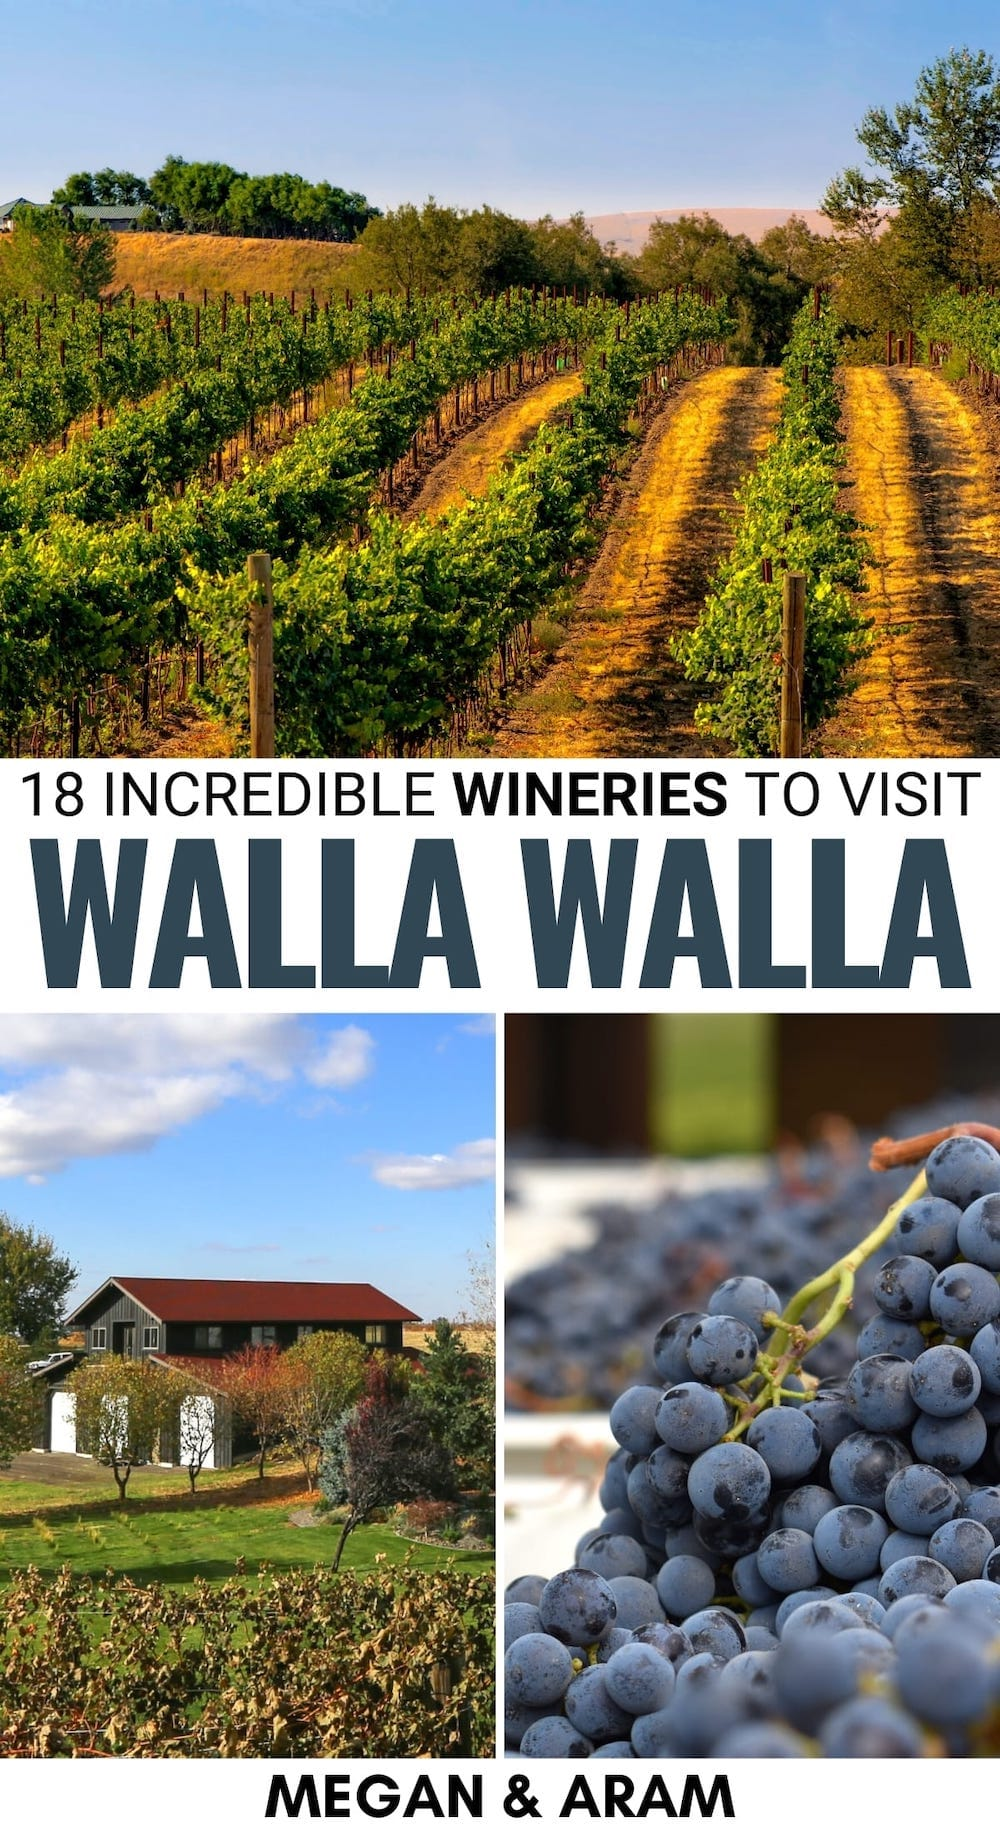 Do you have plans to check out the best Walla Walla wineries? This guide leads you to the finest wineries in Walla Walla Valley - including many tasting rooms! | Walla walla wine tours | Wine in Washington | Washington wine | Walla Walla wine | Walla Walla Valley wine | Washington vineyards | Walla walla vineyards